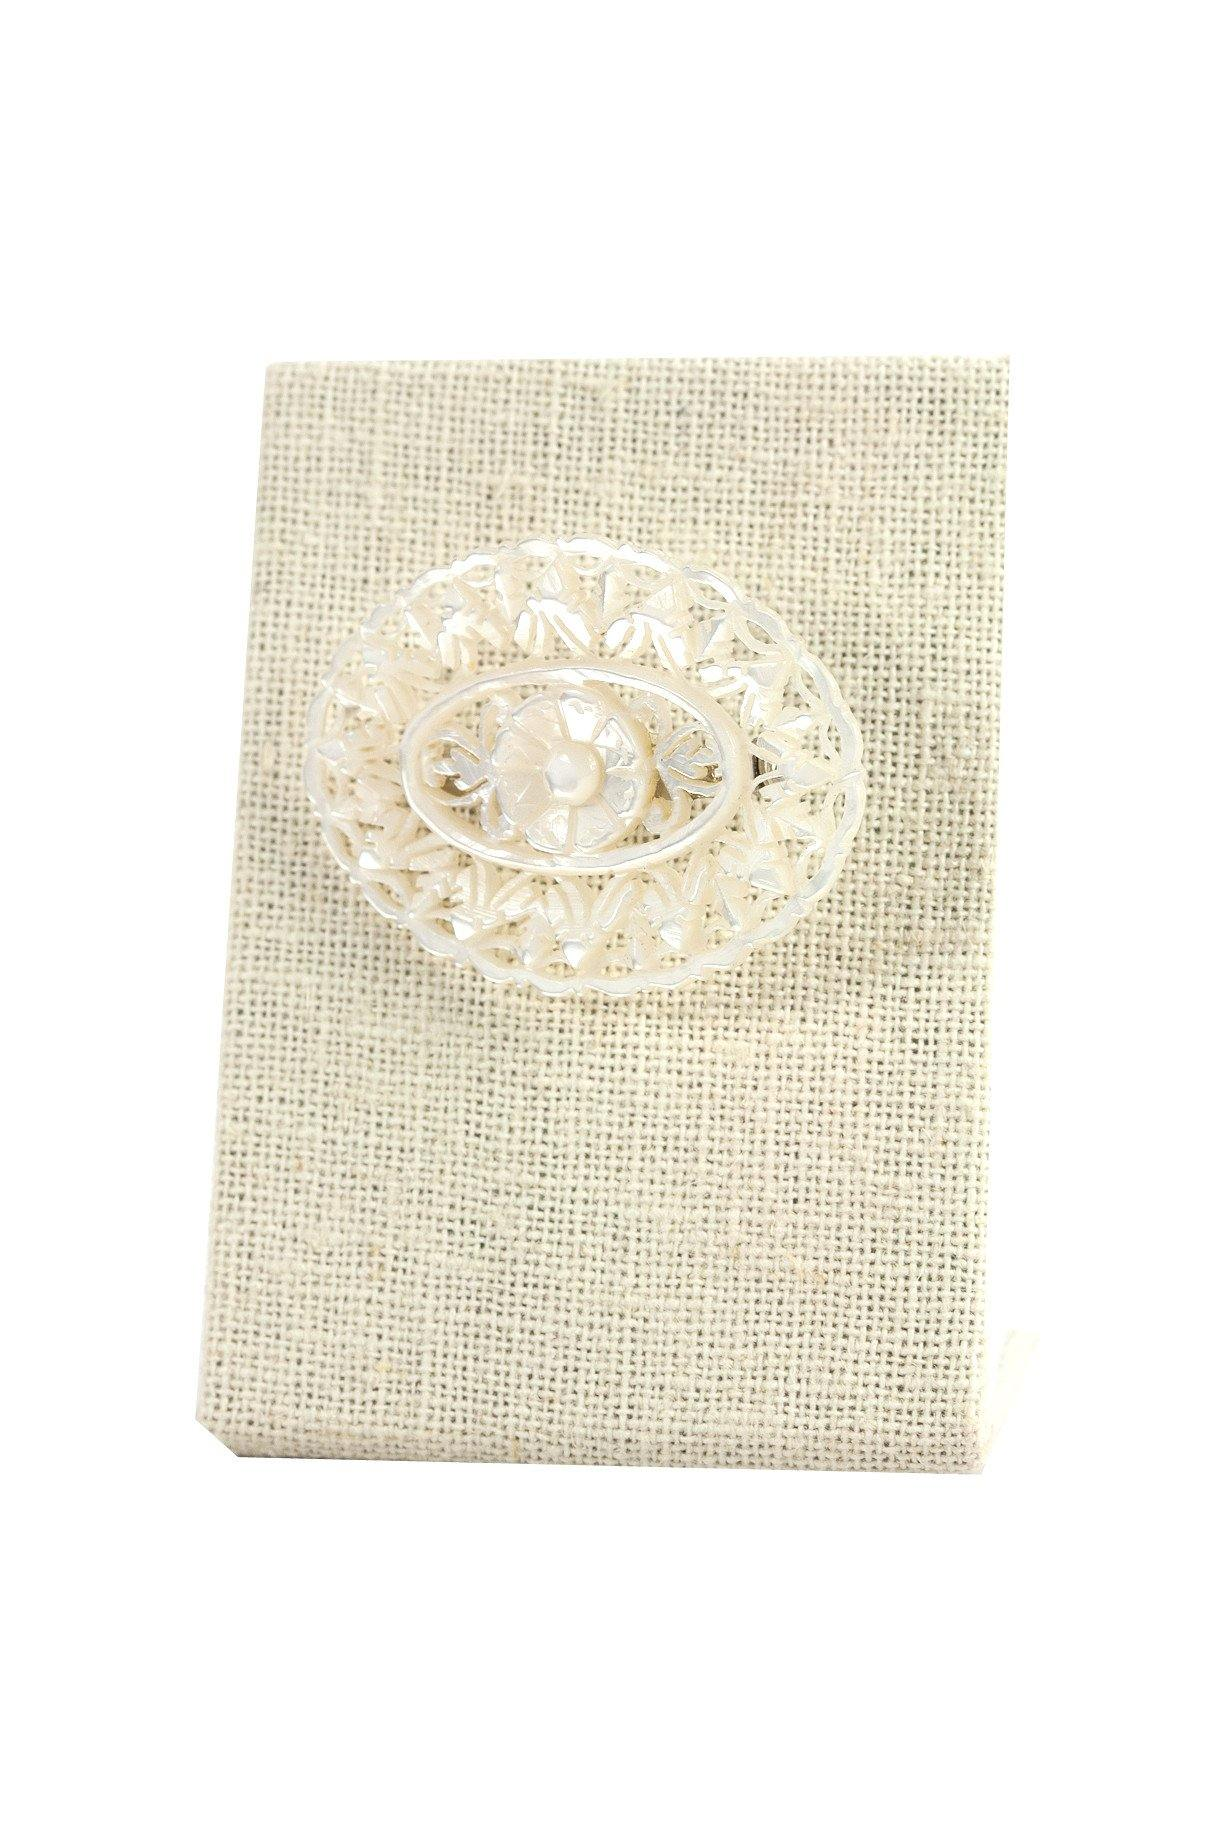 50's__Bethlehe__Mother of Pearl Brooch